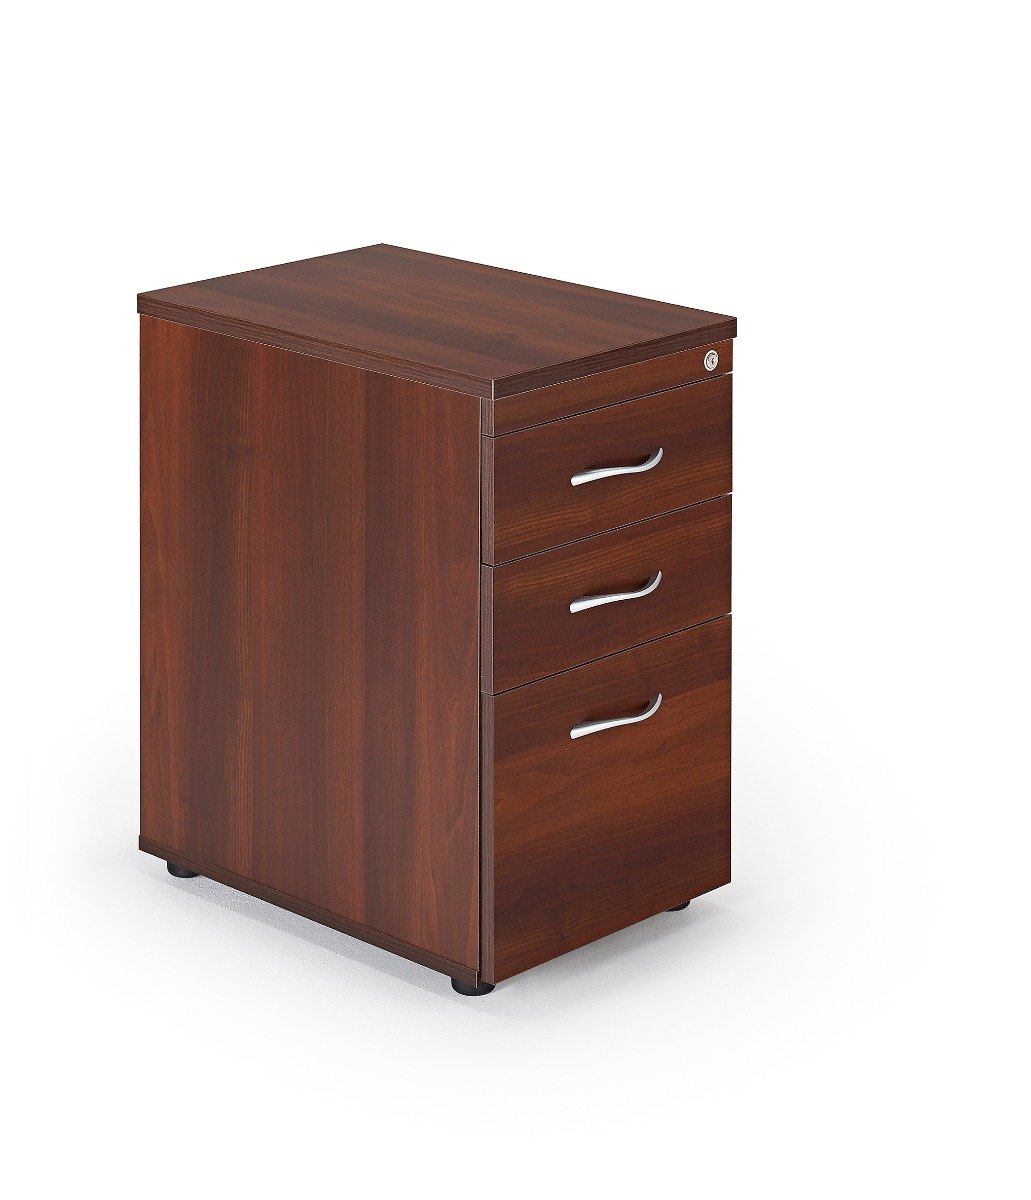 Office Storage Office Pedestals Desk High Pedestal In Walnut Finish